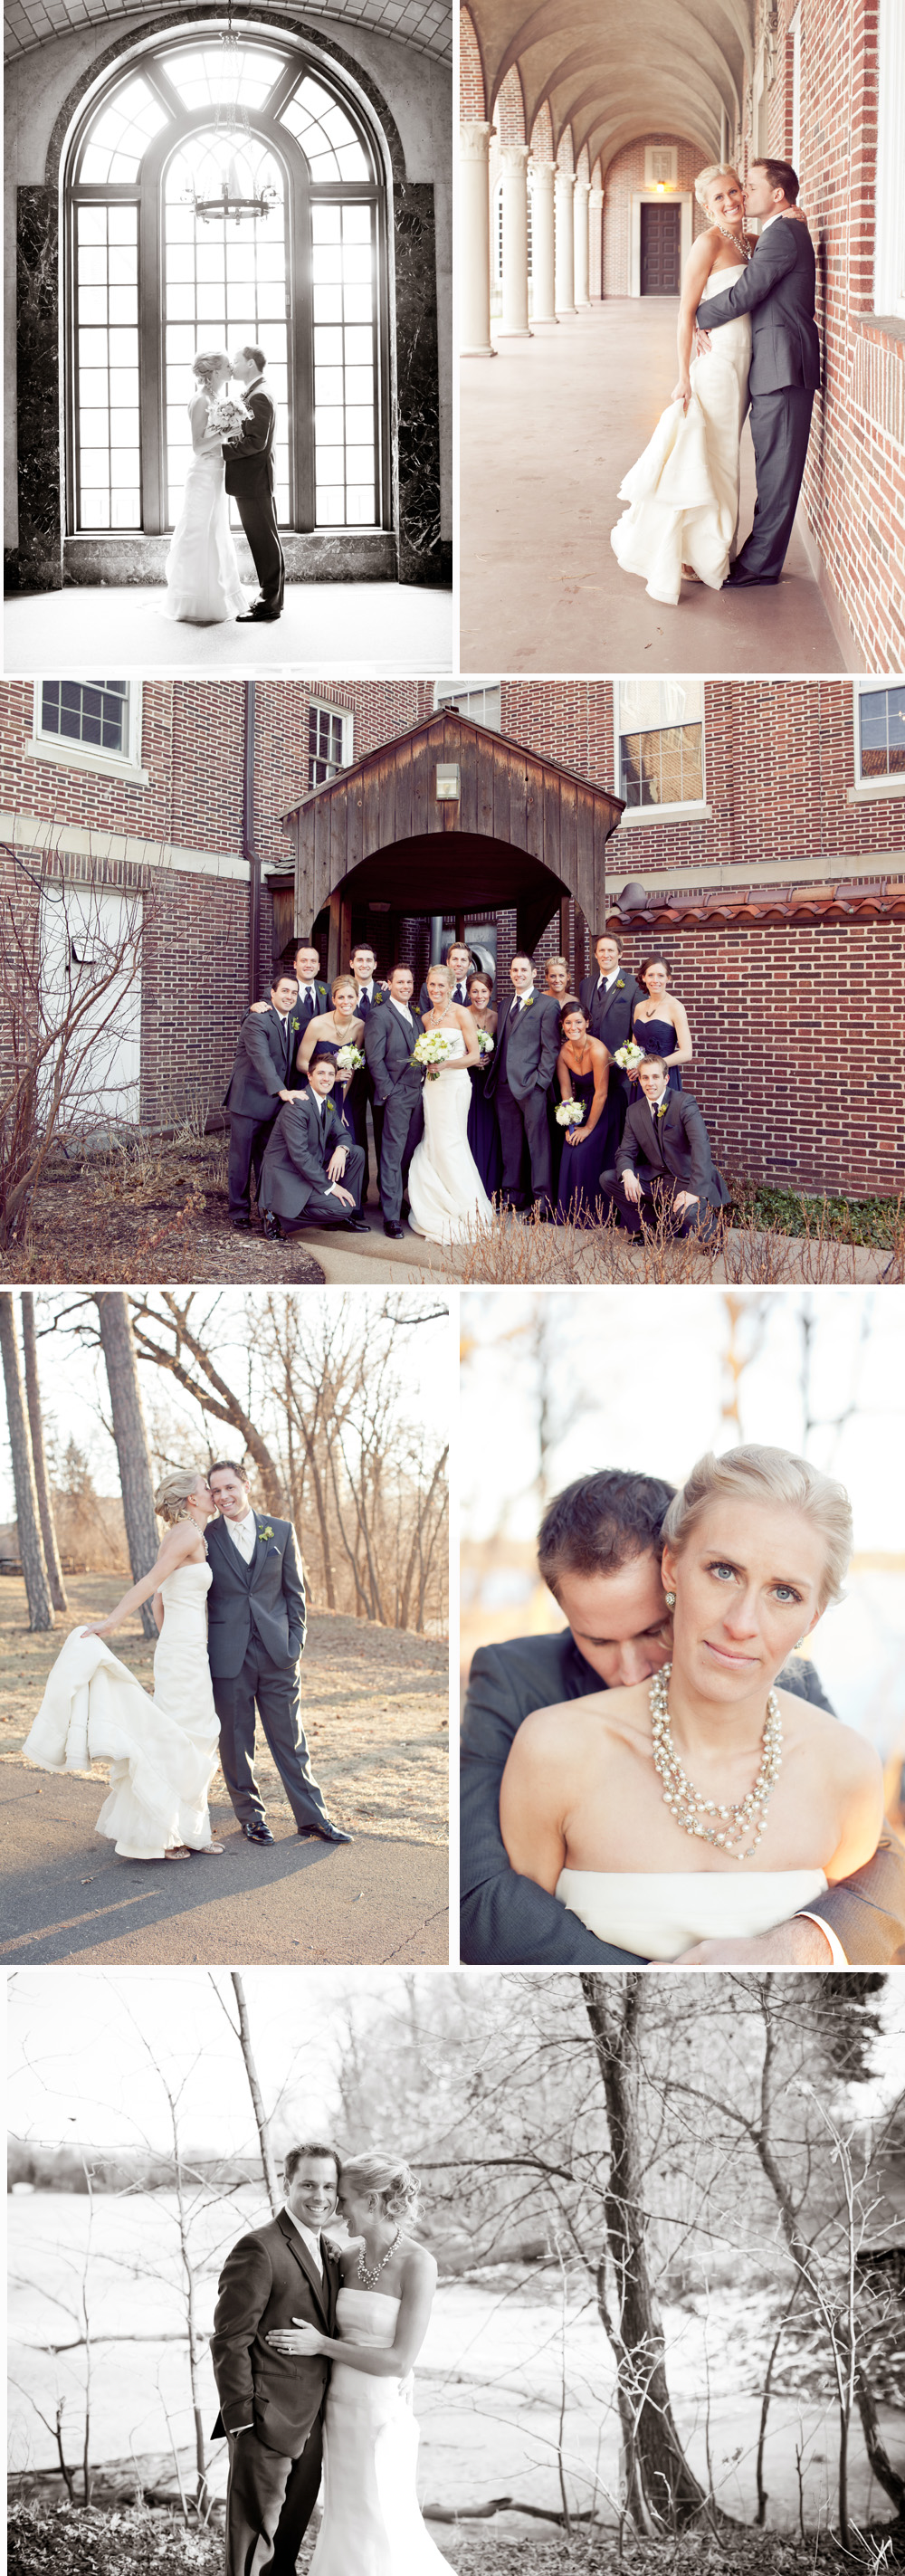 Midwestern Winter Wedding by Paige Winn Photo